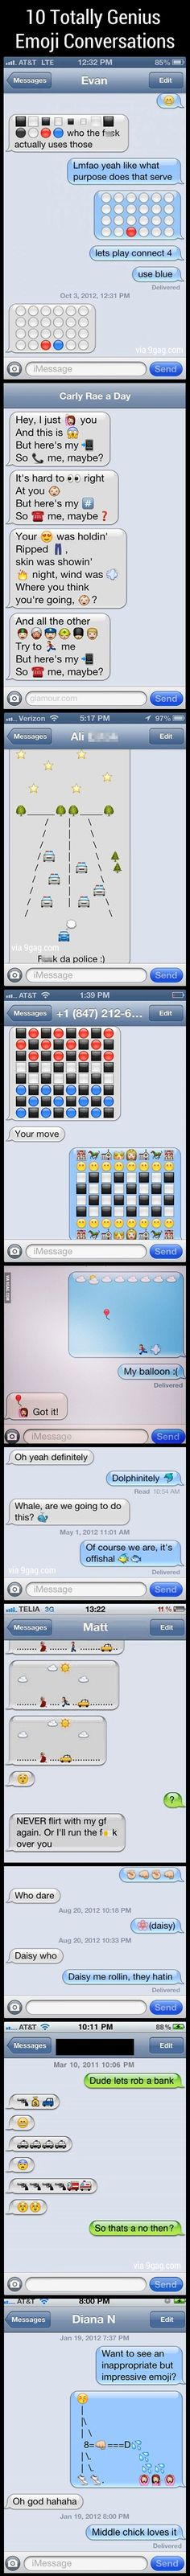 10 Totally Genius Emoji Conversations